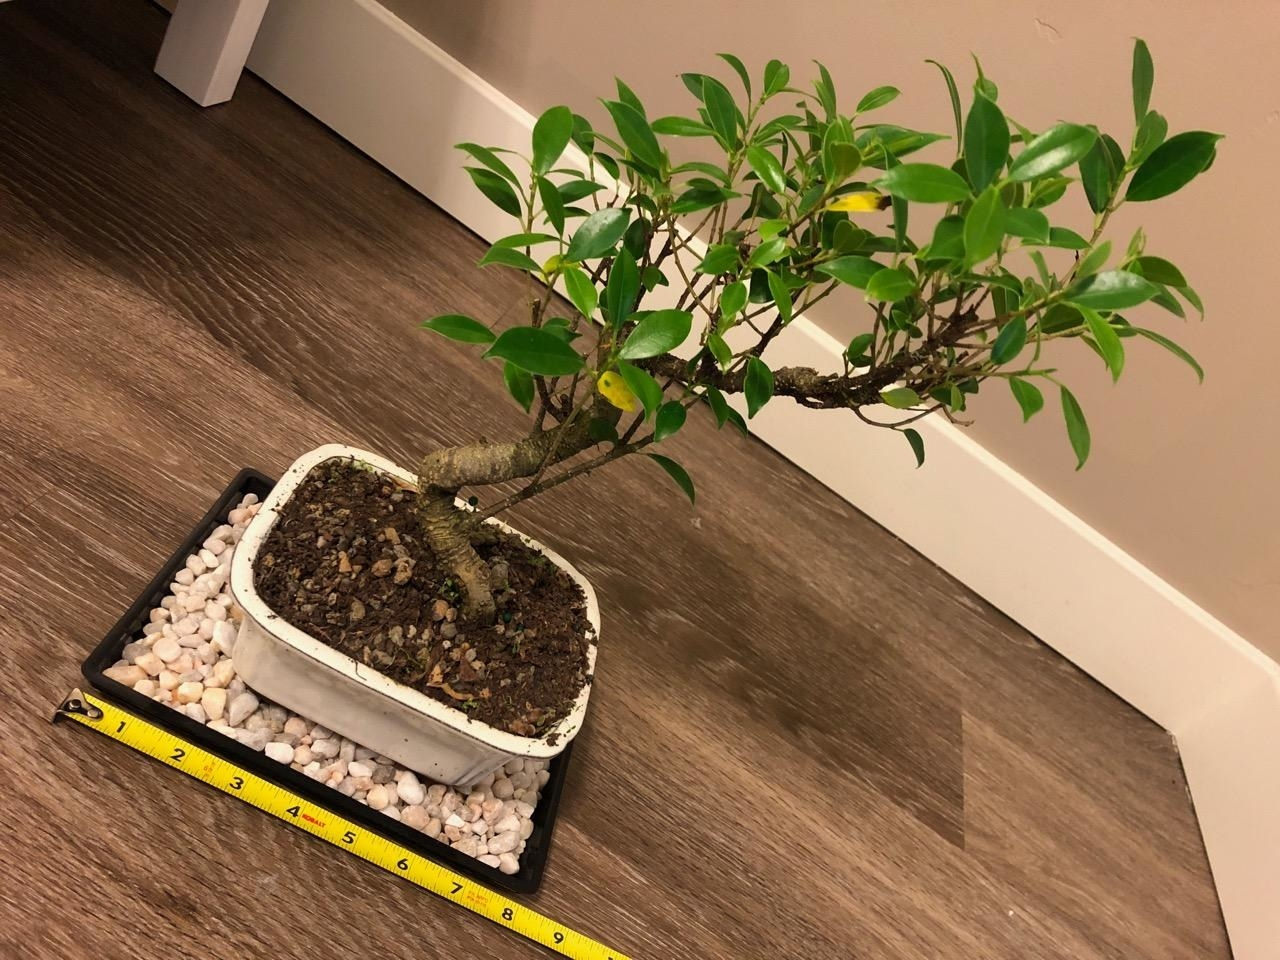 reviewer's bonsai tree sitting on pebble tray with tape measurer showing it's eight inches long